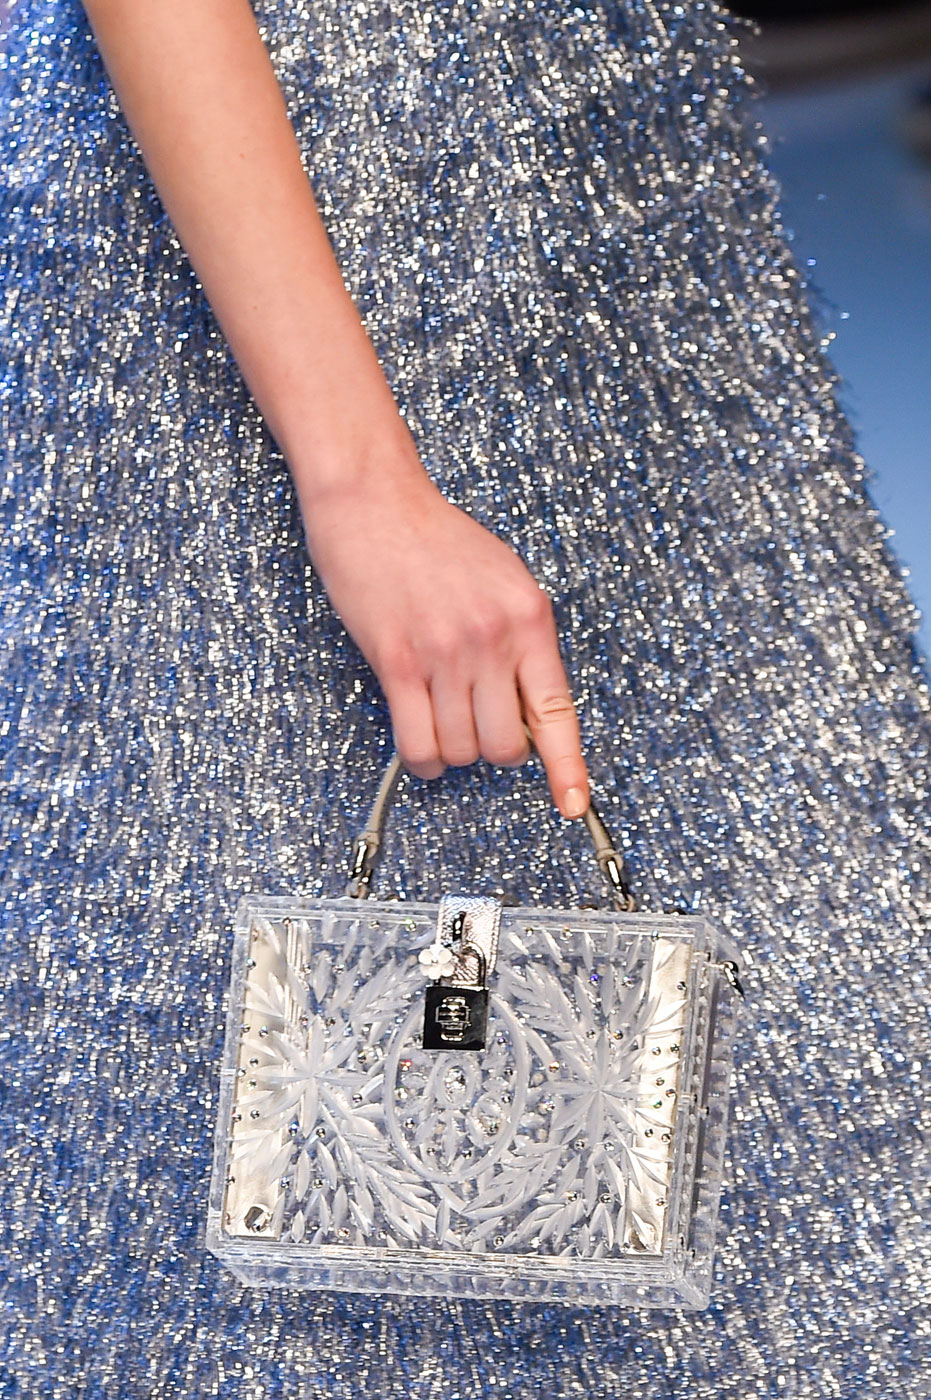 Clear Heels? They're Back, and So Are Reveal-All Bags